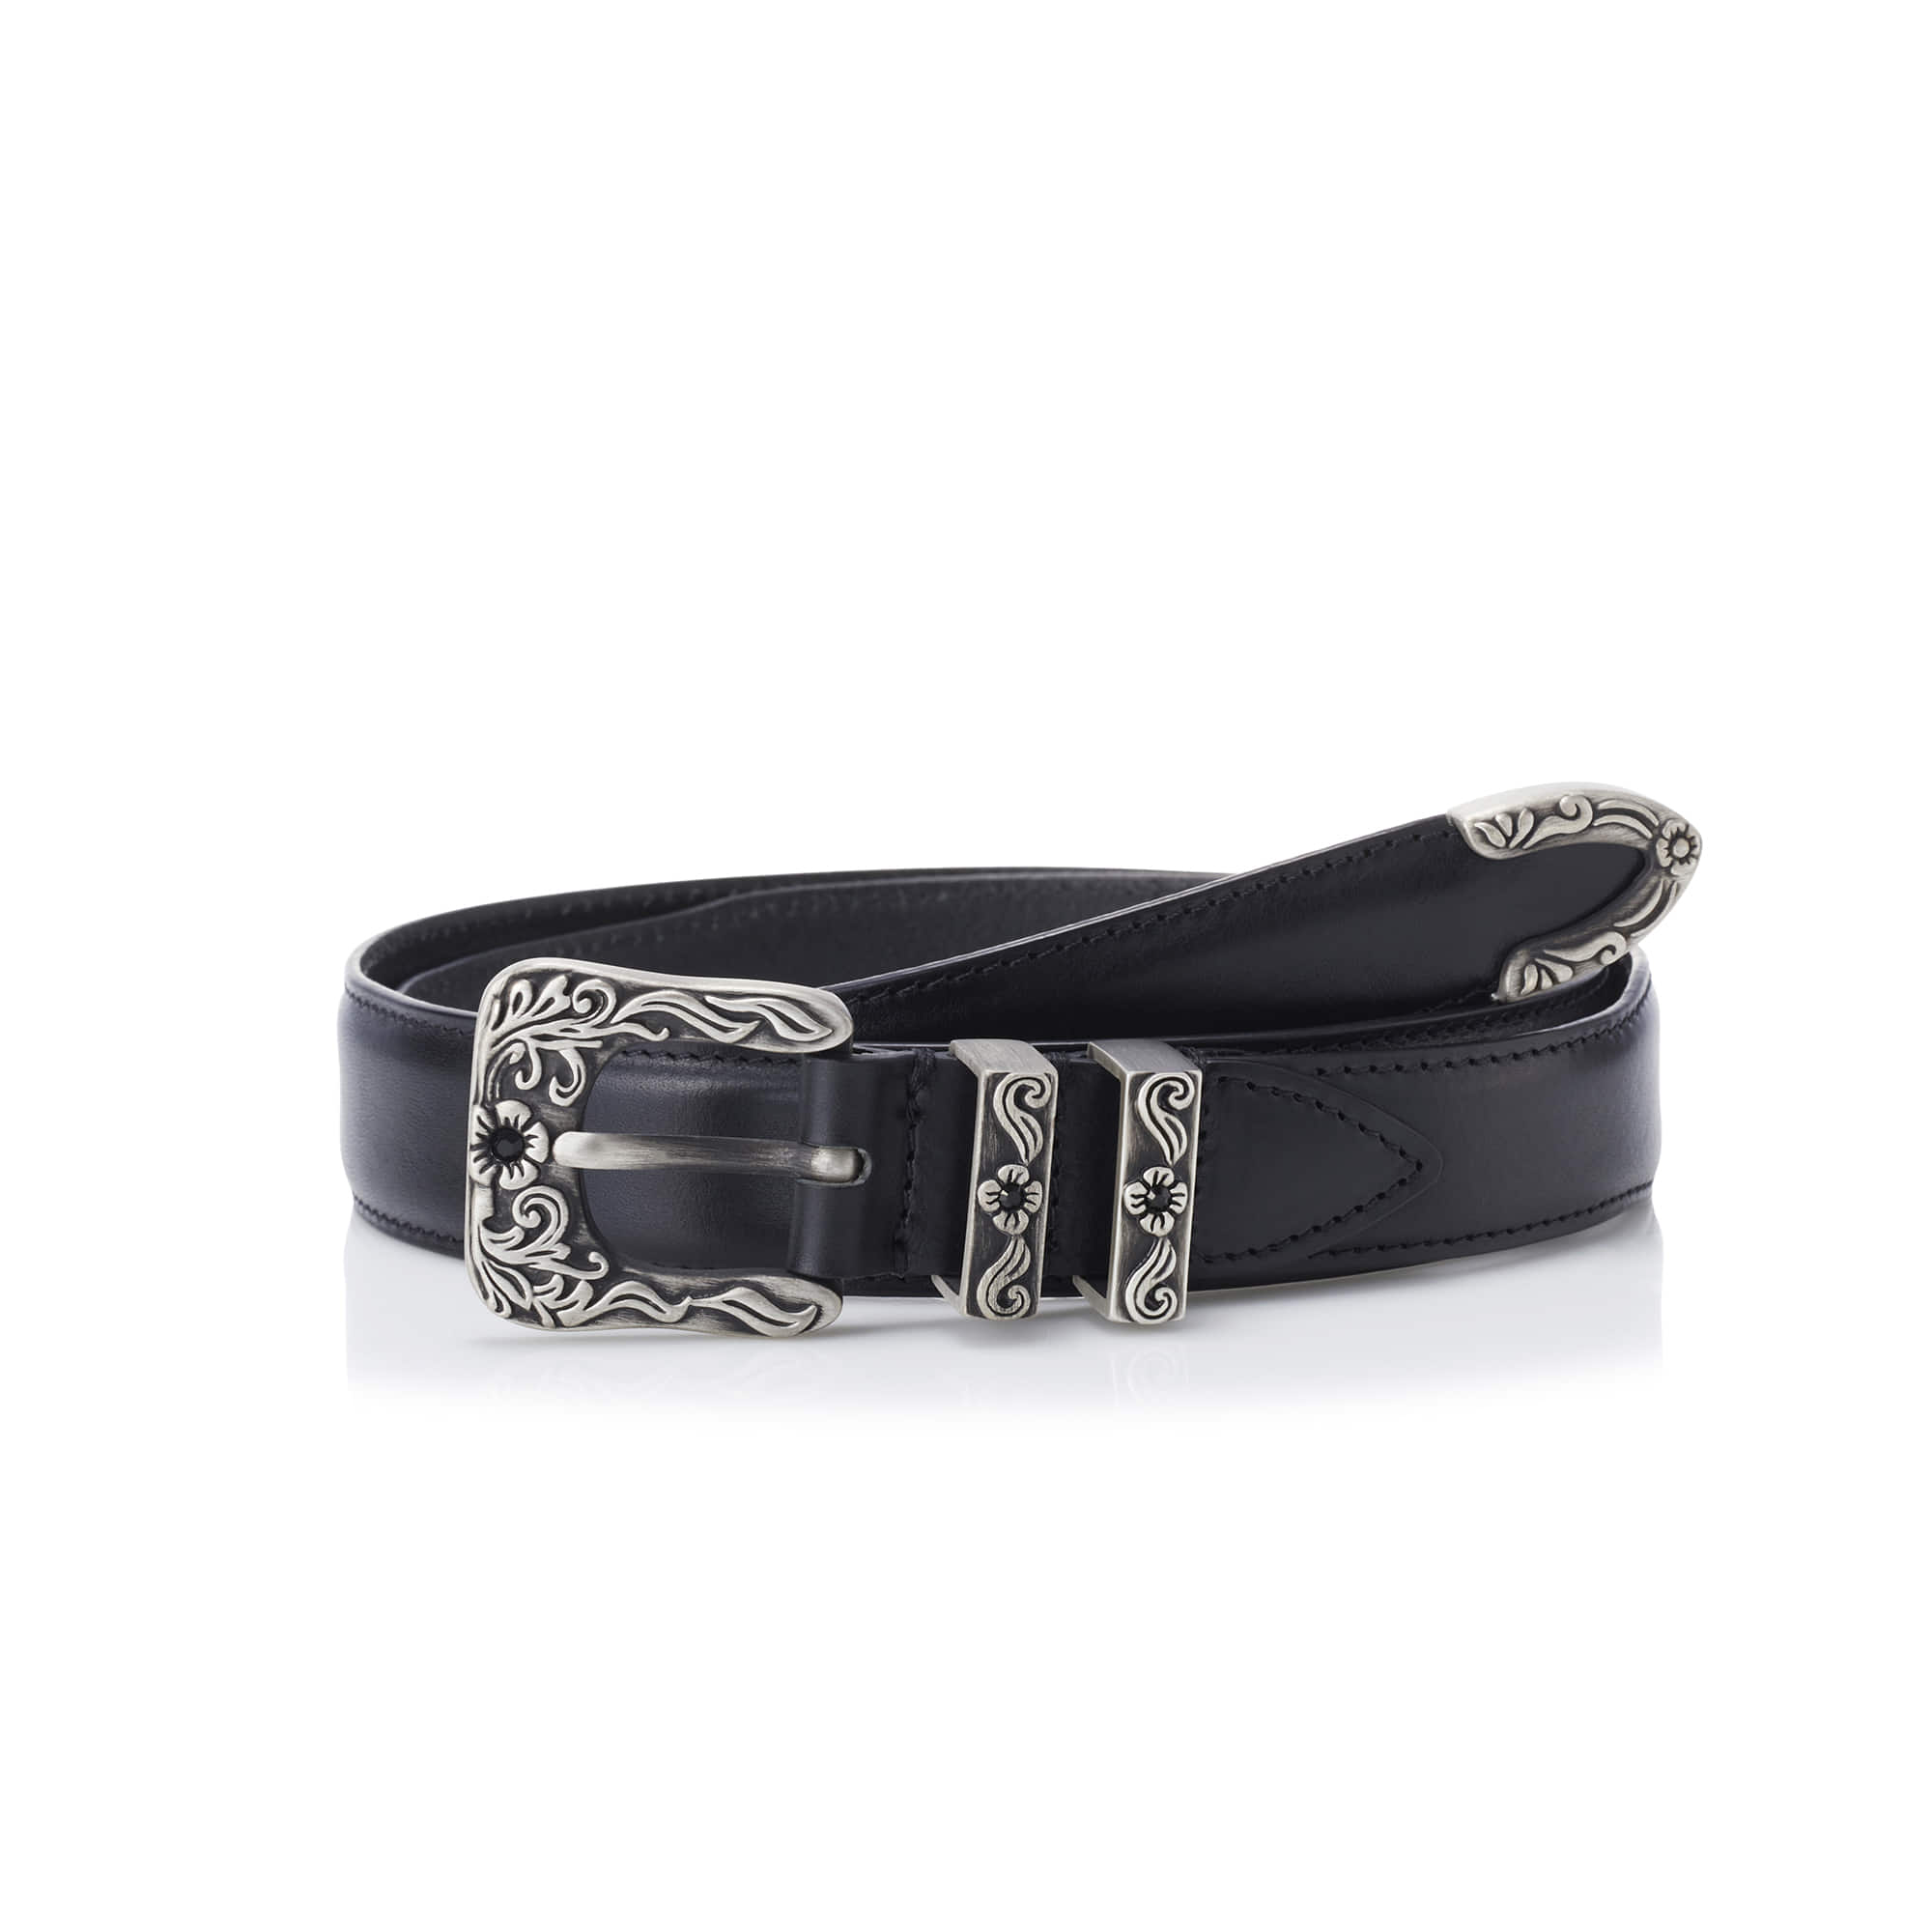 -[SAVAGE] 180 Leather Belt - Black